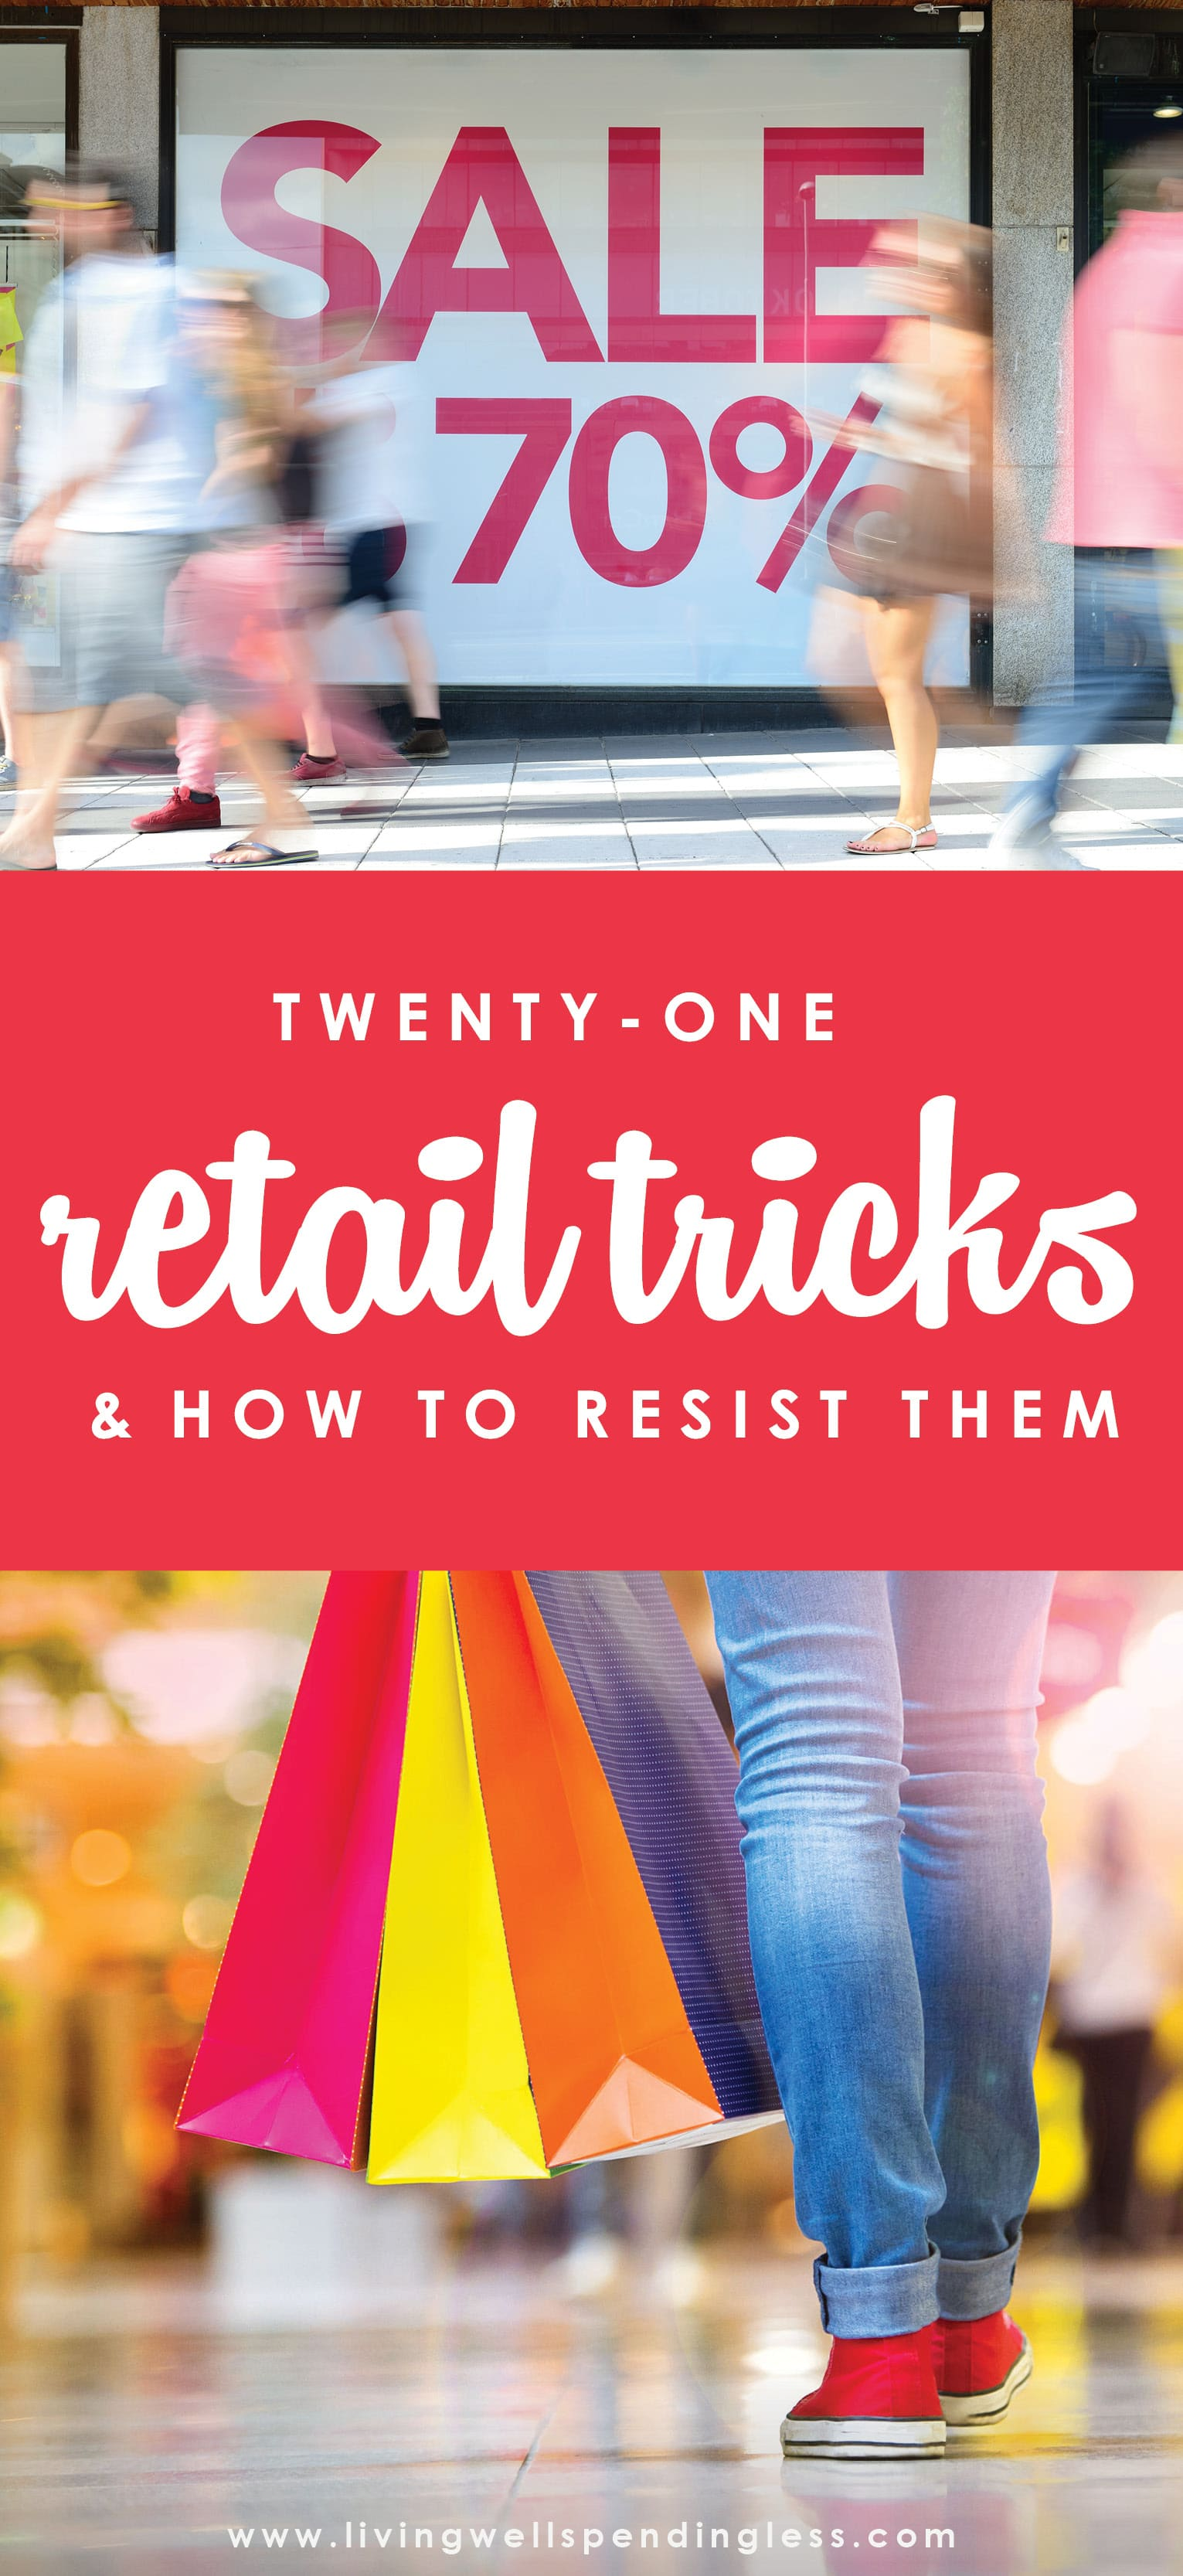 Ever find yourself buying more than you intended at your favorite retail store? Whether it's clothing or home goods or even groceries, retailers are working overtime to get us to buy more with any number of subtle and not-so subtle sales tactics. If you've ever spent more than you intended to, you NEED to understand these 21 retail tricks (and how to resist them!)  Retail Tricks (and How to Resist Them) |  Budgeting | Home Decluttering | Home 101